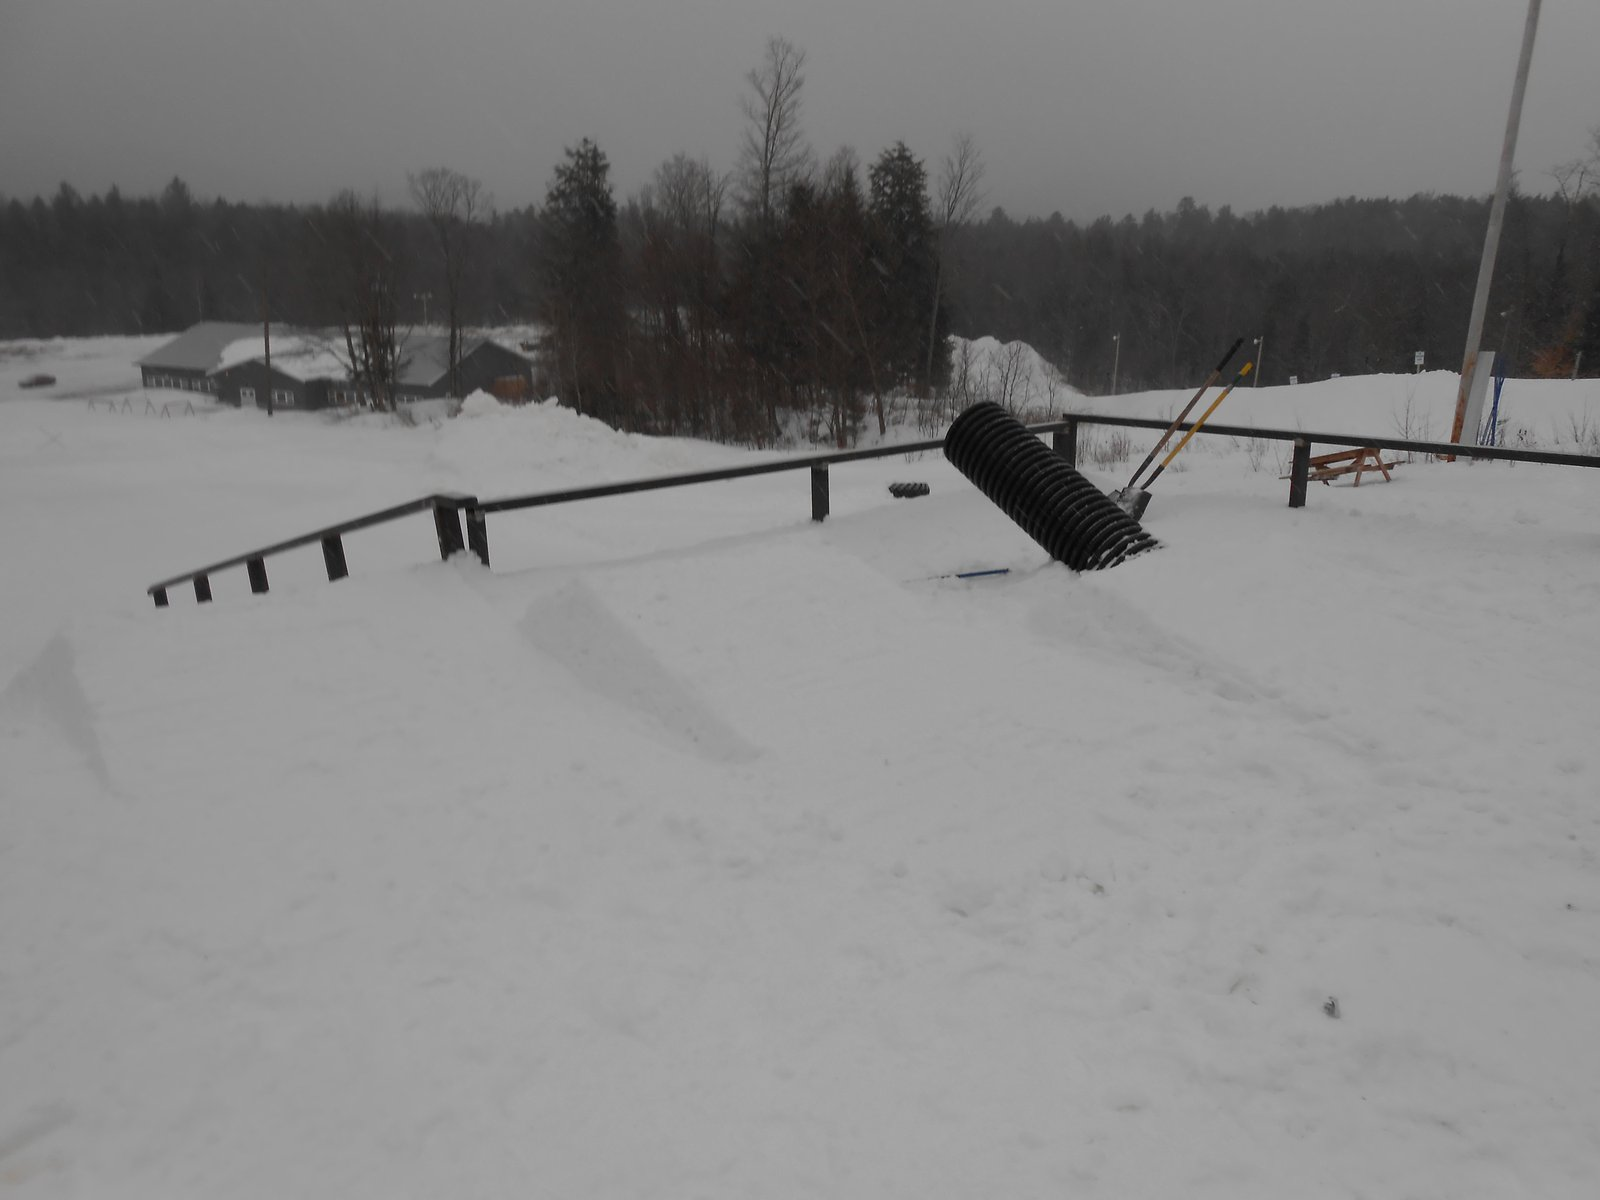 Rail jam setup in progress